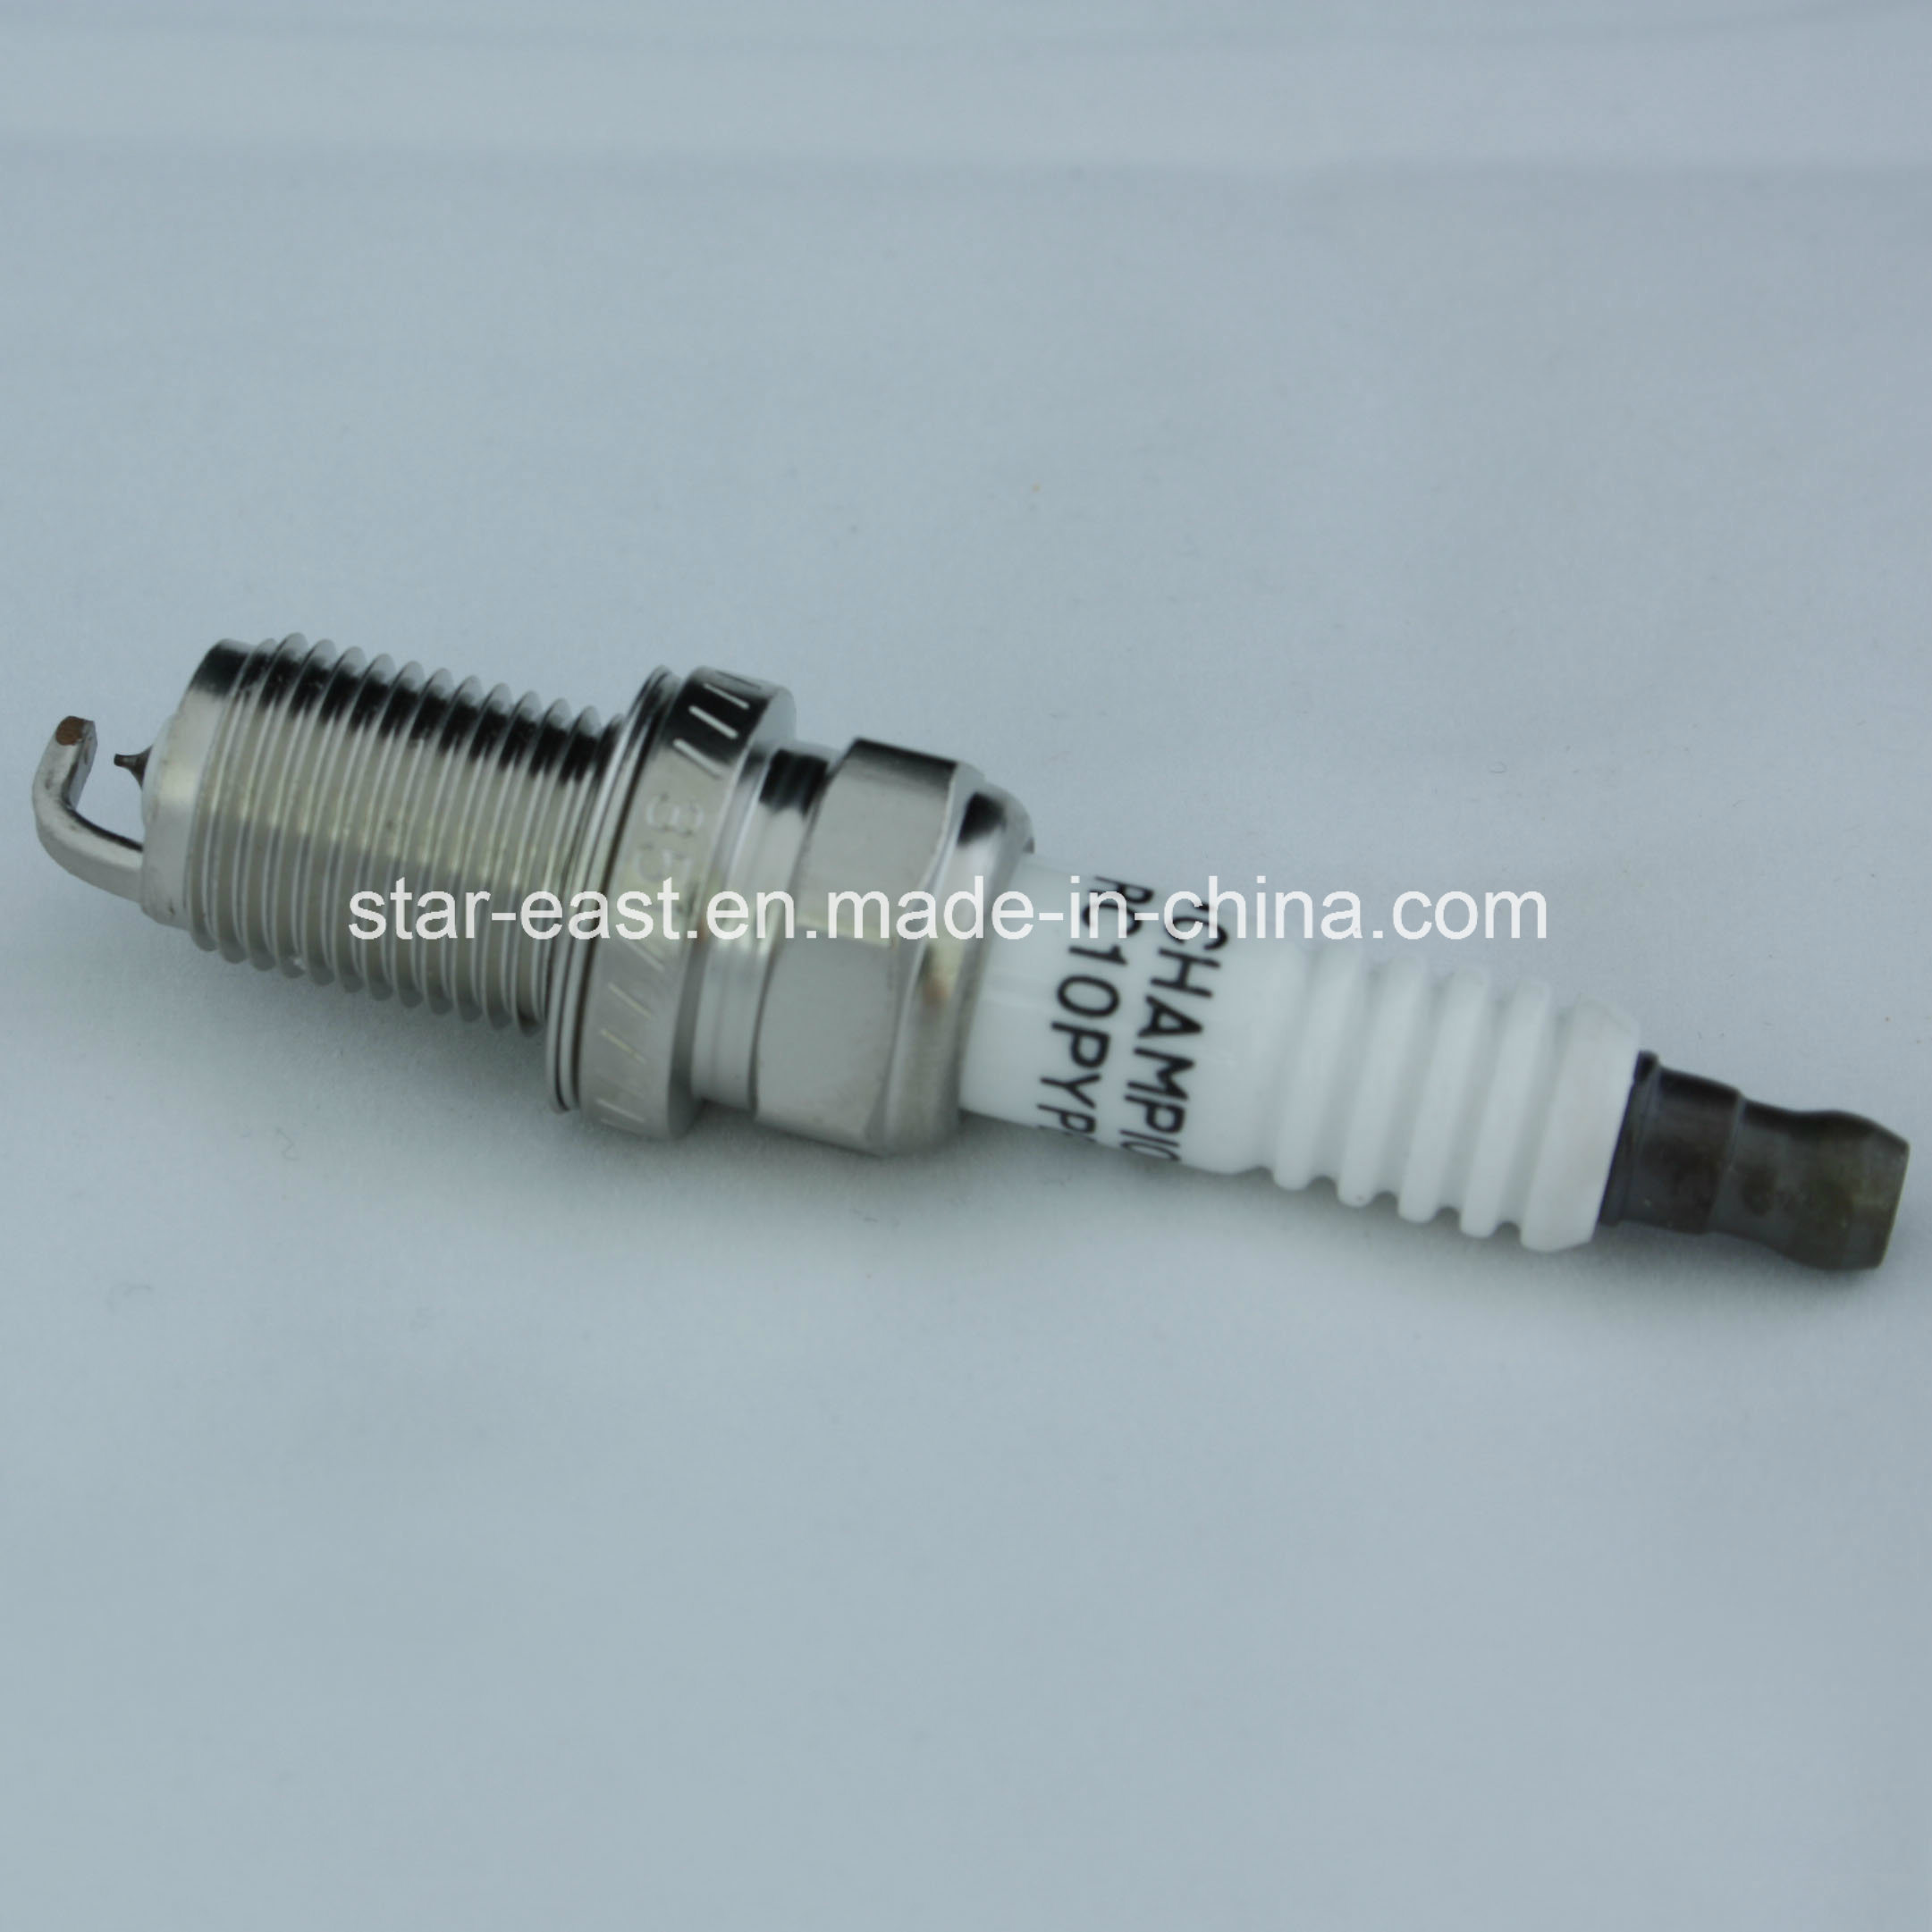 Iridium Power Spark Plug for 18814 11051 Hyundai/KIA